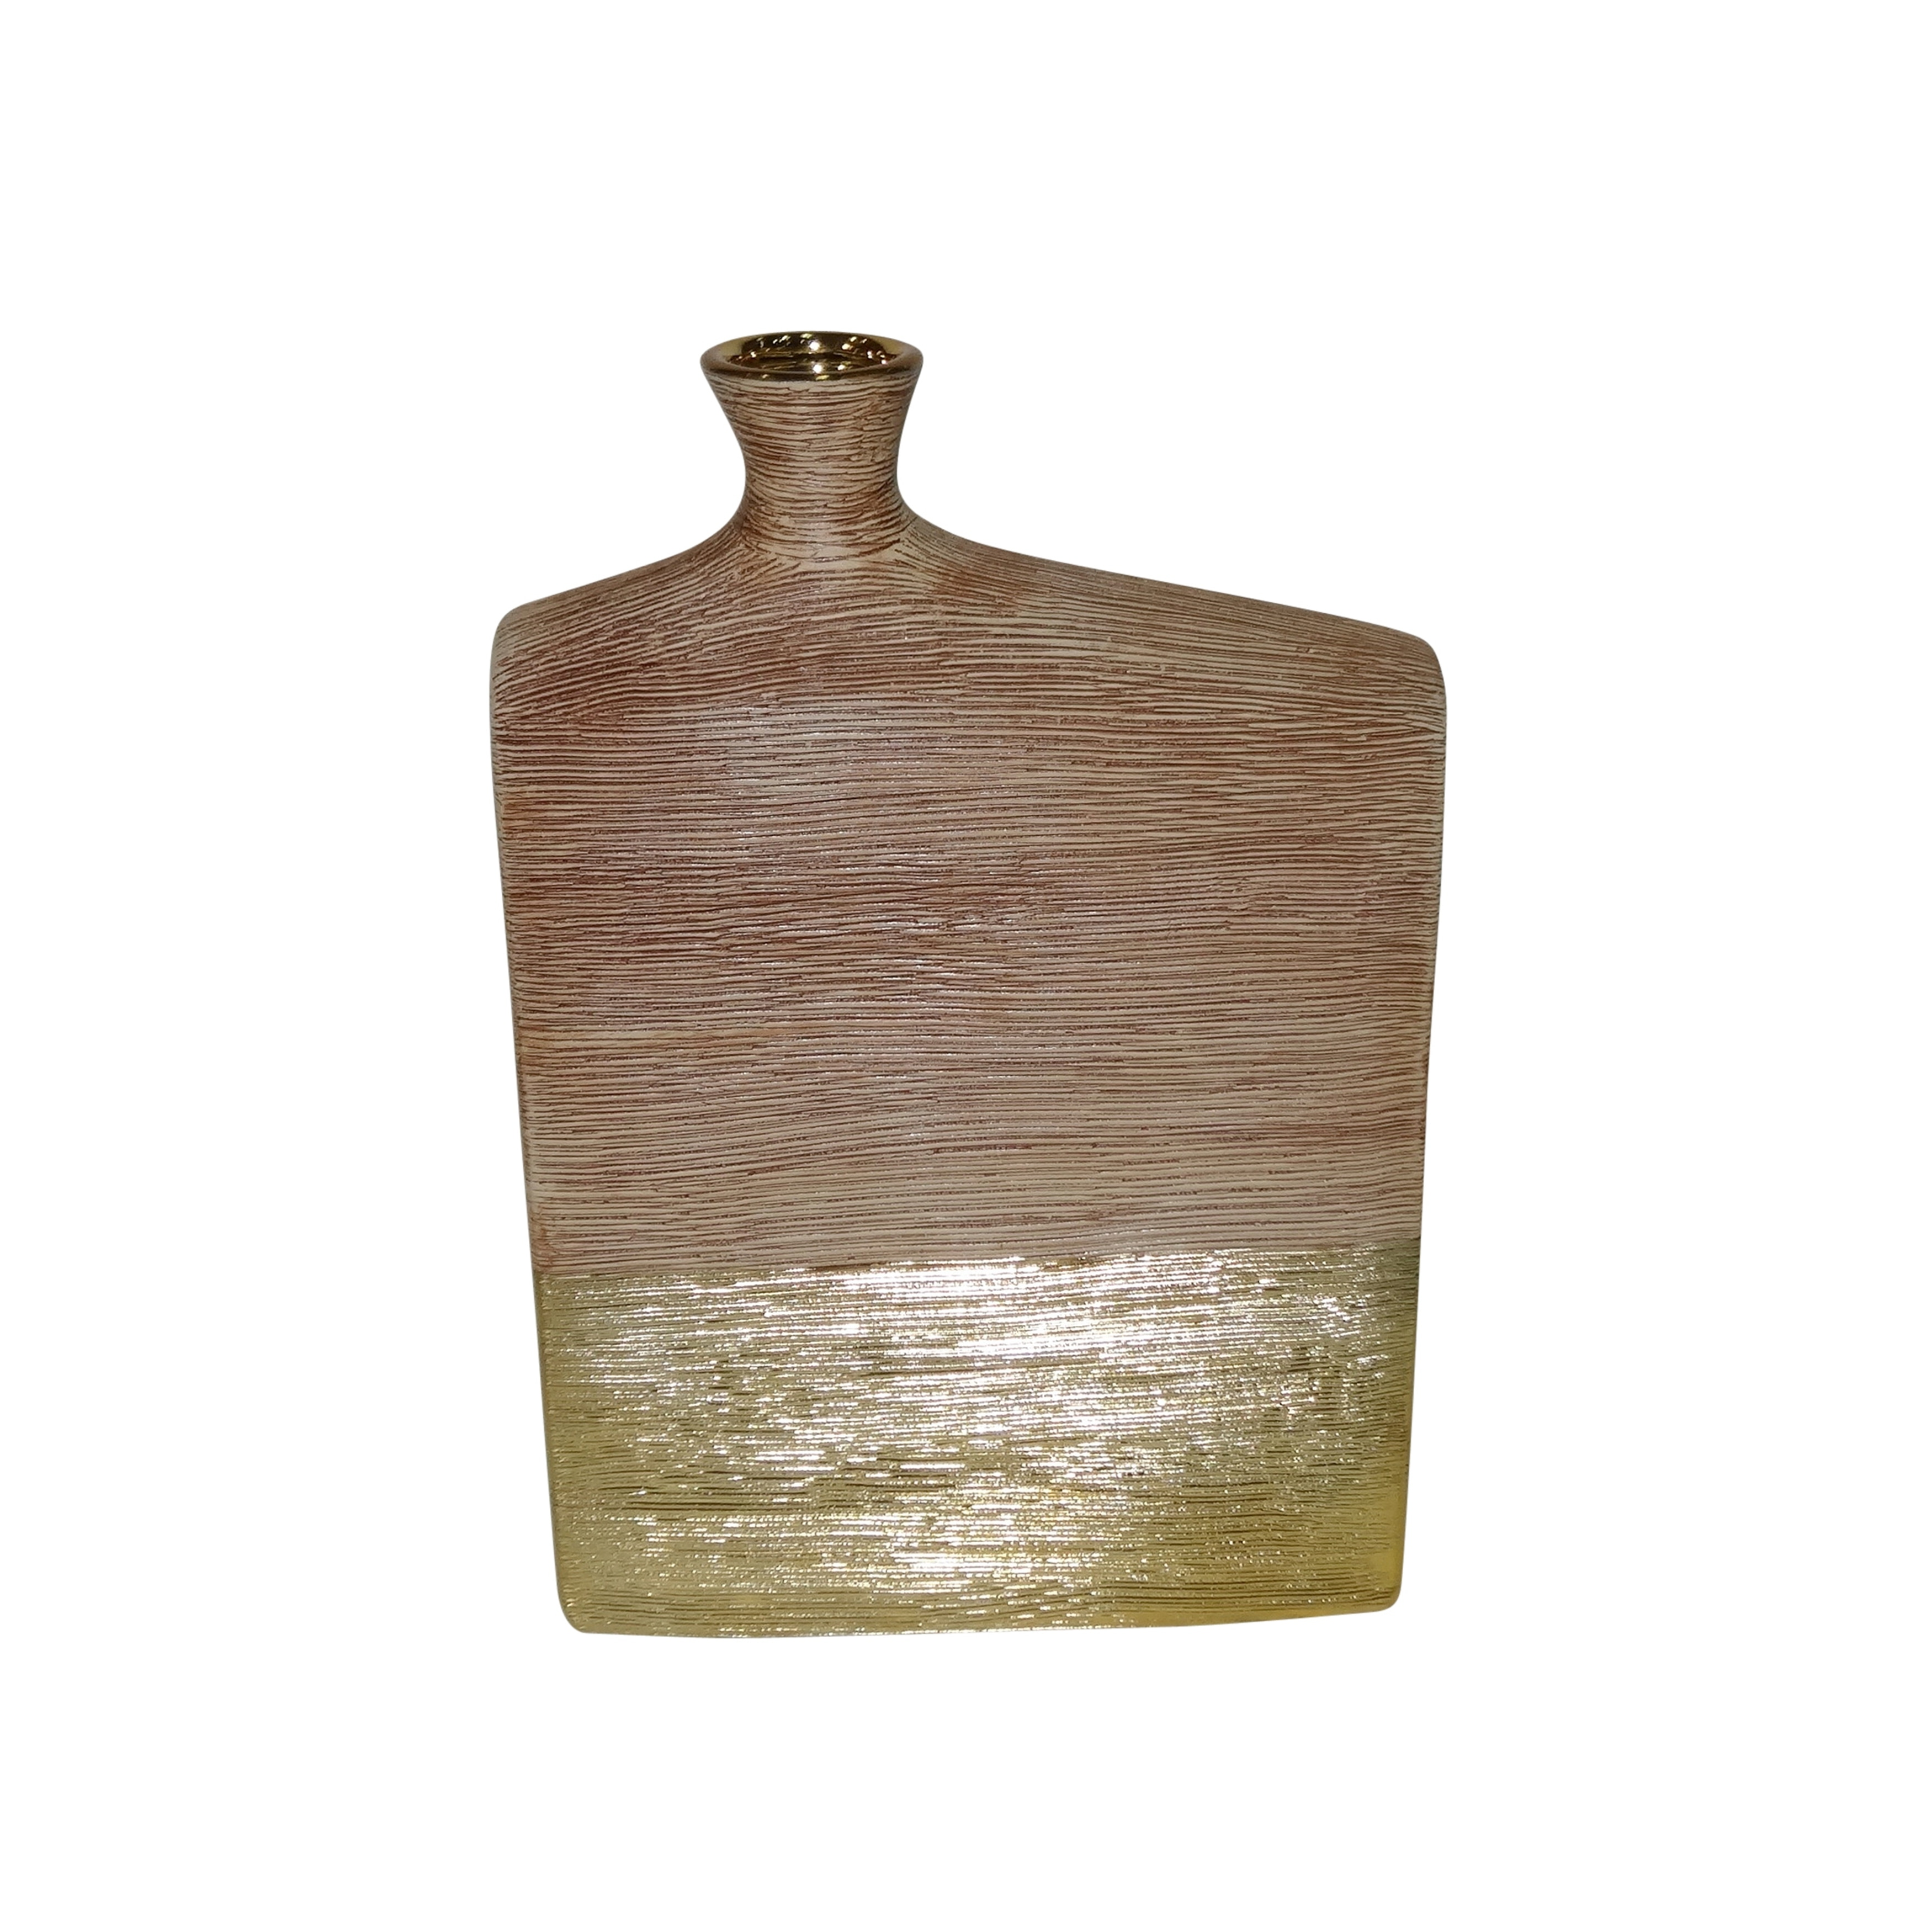 Textured Wide Ceramic Vase with Narrow Opening , Brown and Gold